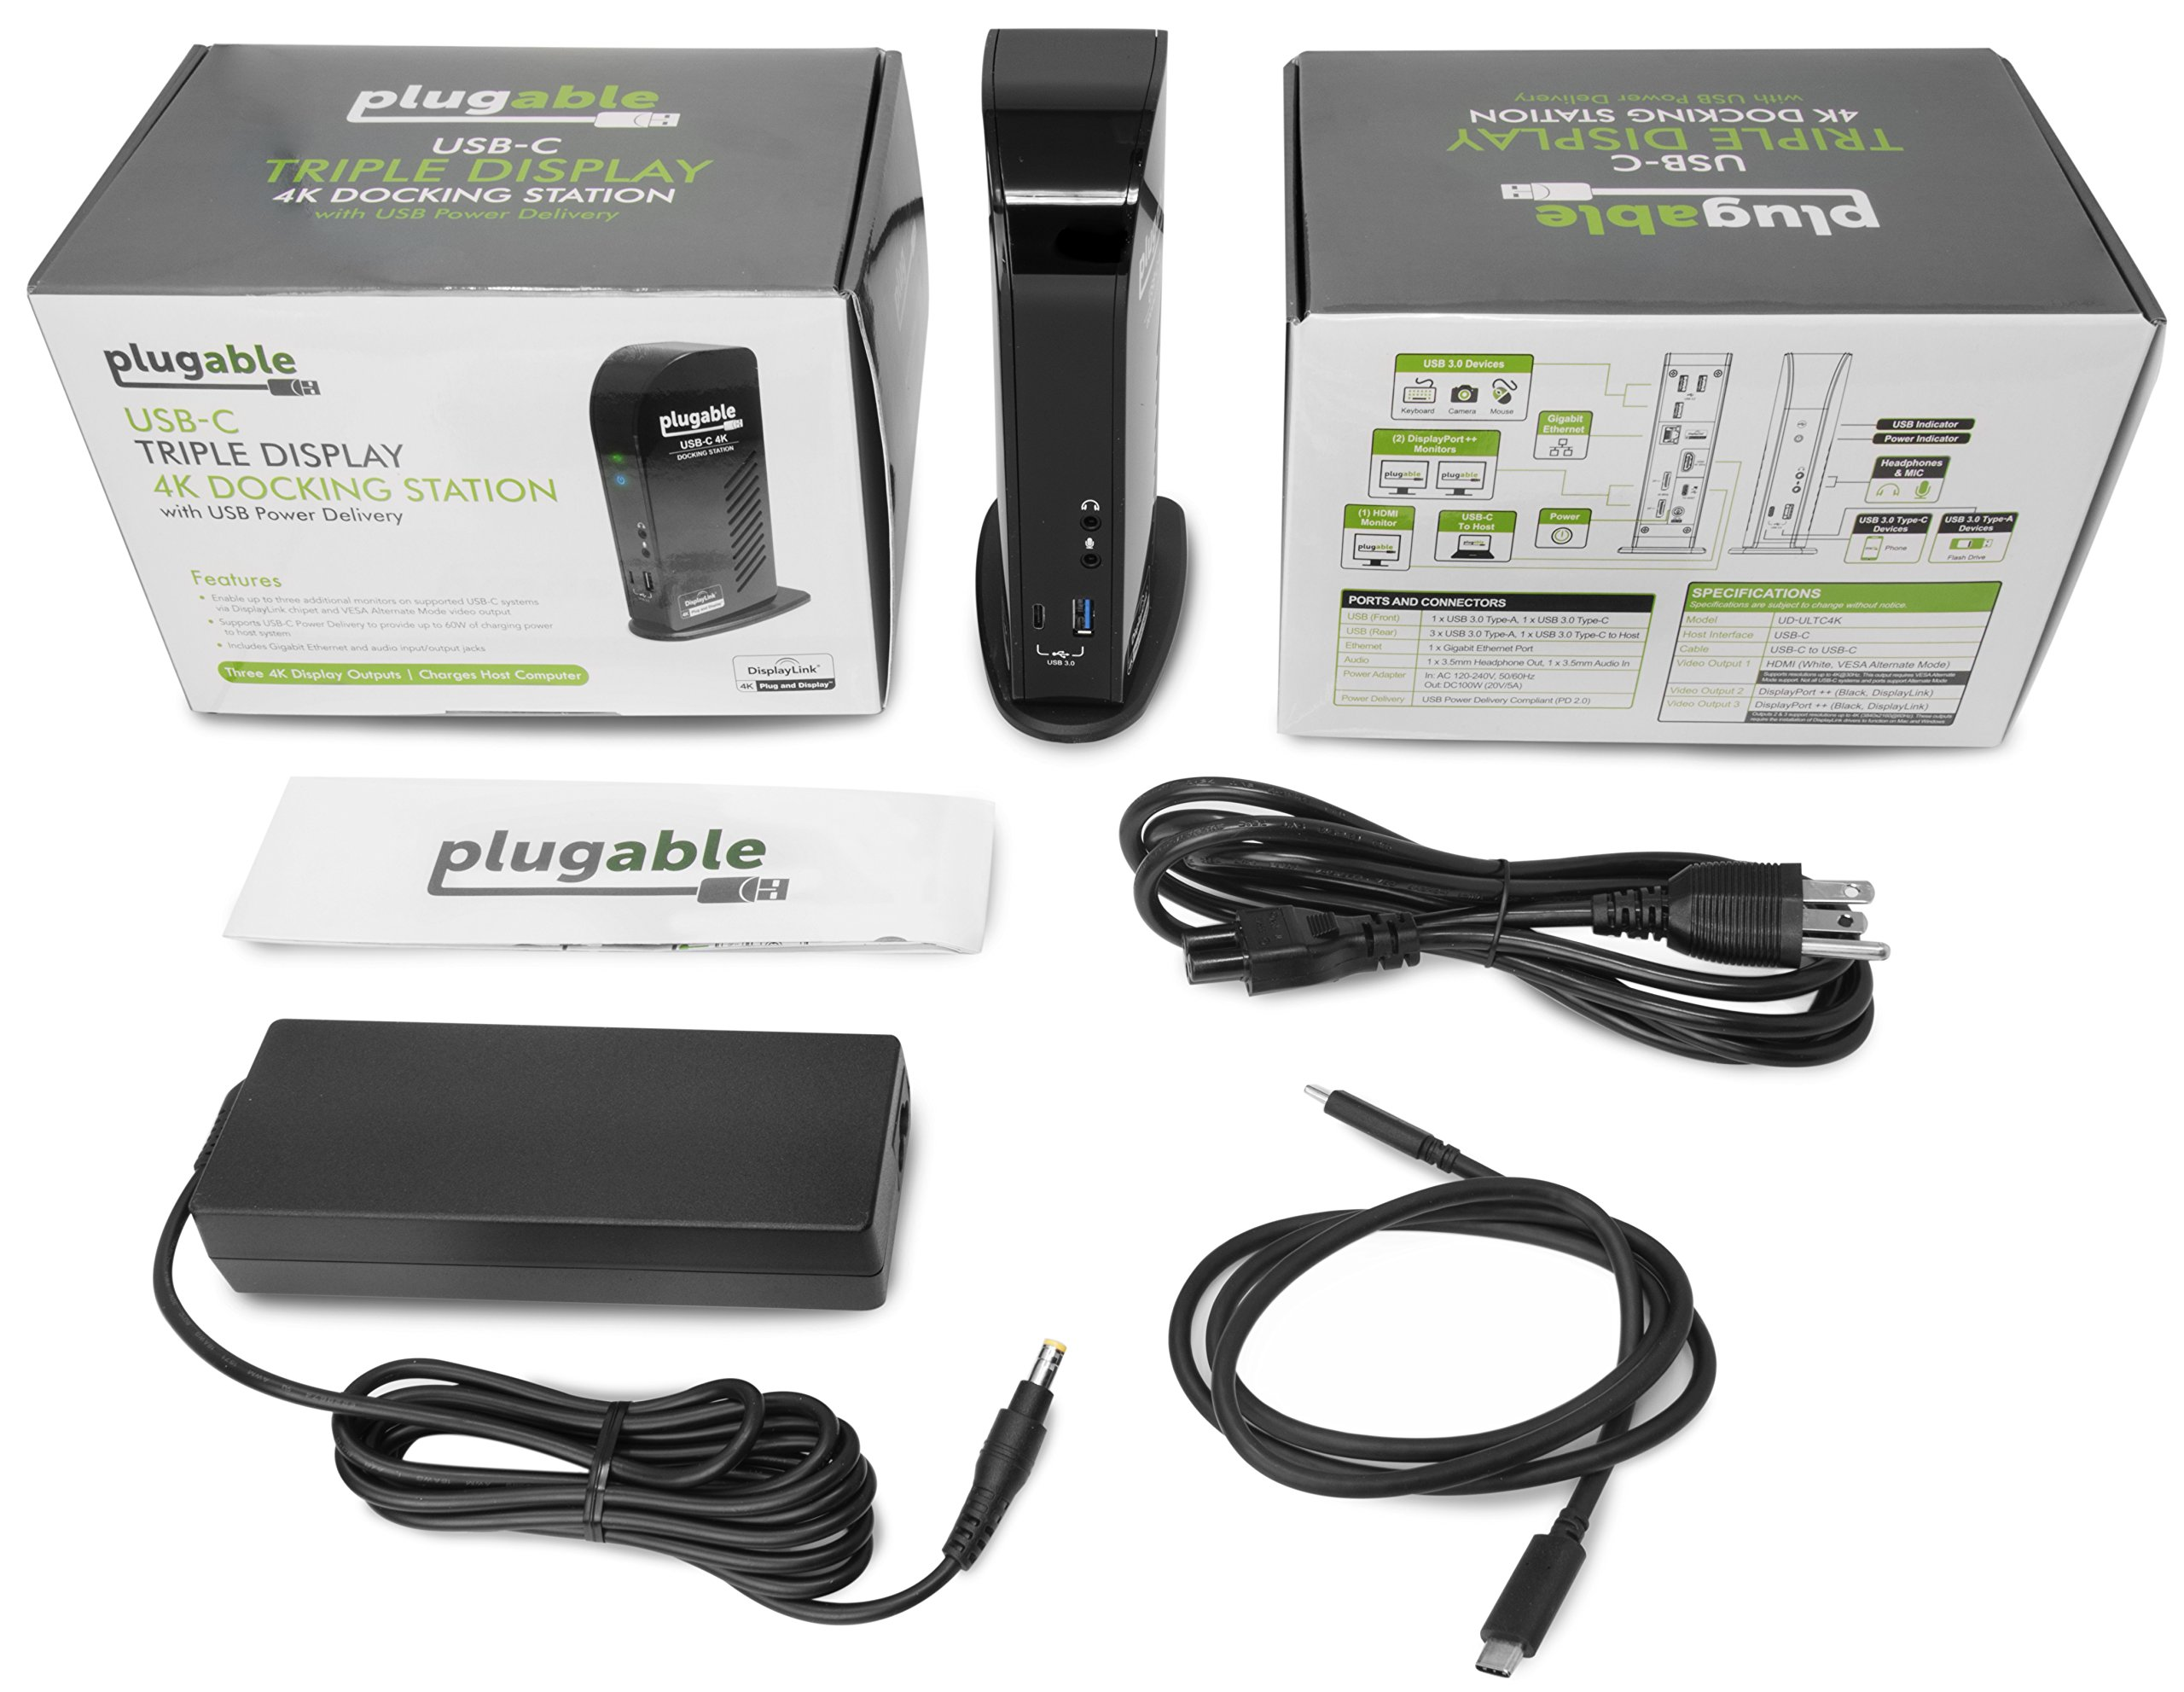 Plugable USB-C 4K Triple Display Docking Station with Charging Support for Specific Mac & Windows USB Type-C / Thunderbolt 3 Sysems (1x HDMI & 2x DisplayPort++ Outputs, 60W USB PD) by Plugable (Image #4)